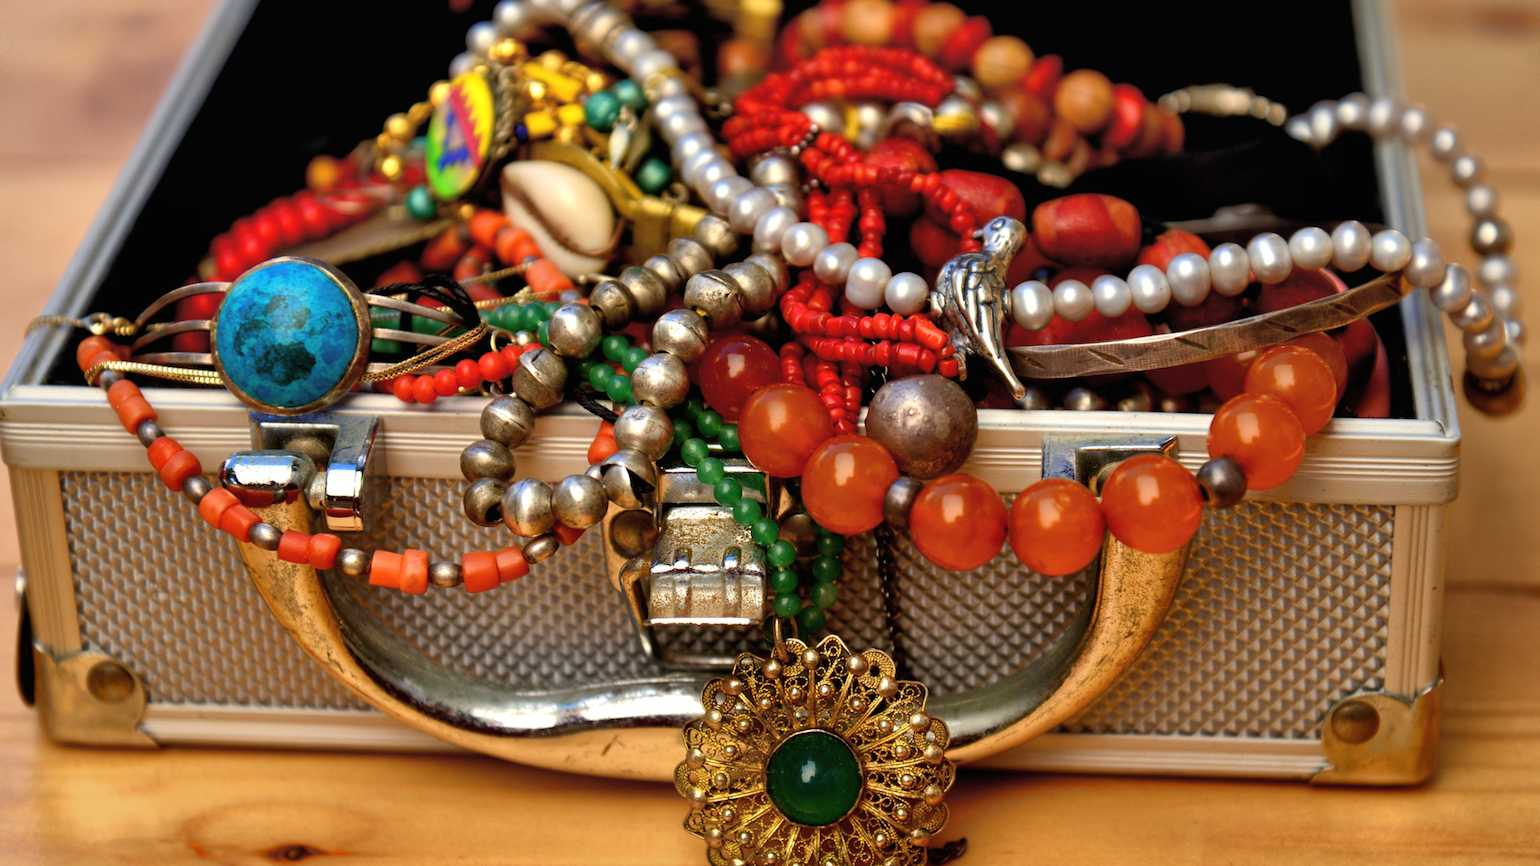 We are jewels in God's sight. An excerpt from God Glimpses from the Jewelry Box.